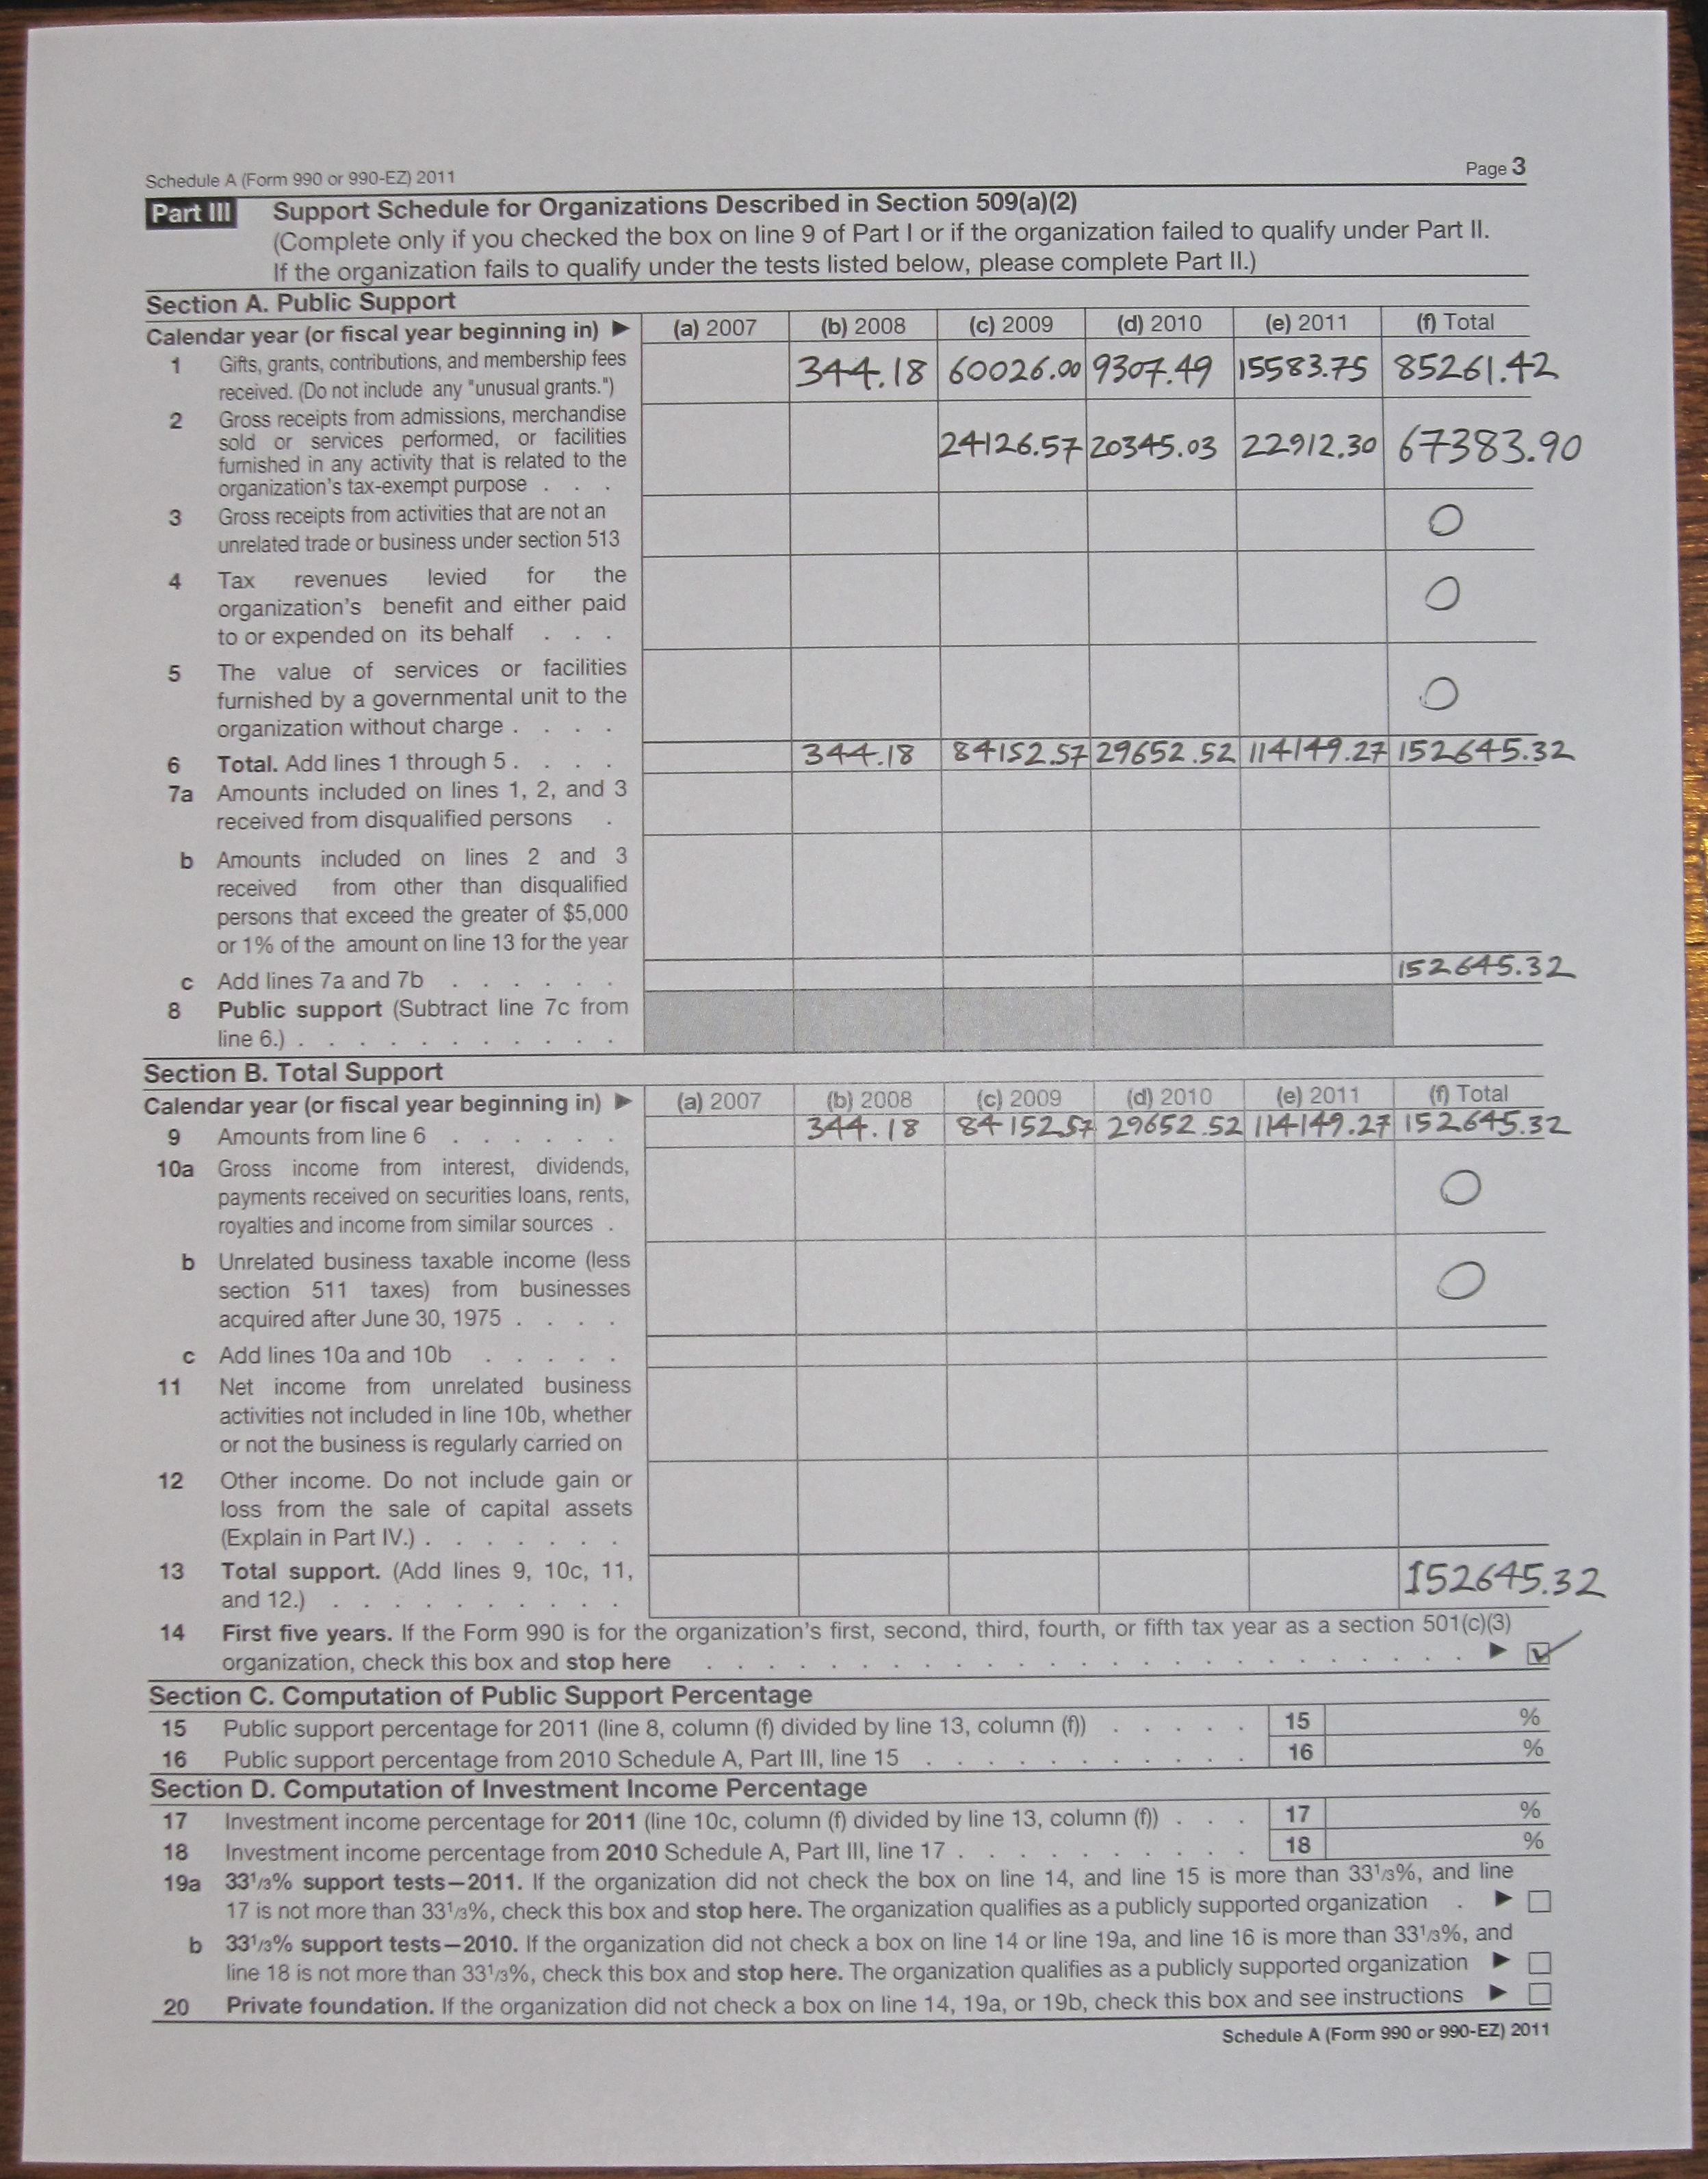 2015 1040 tax form for 1040a tax table 2015